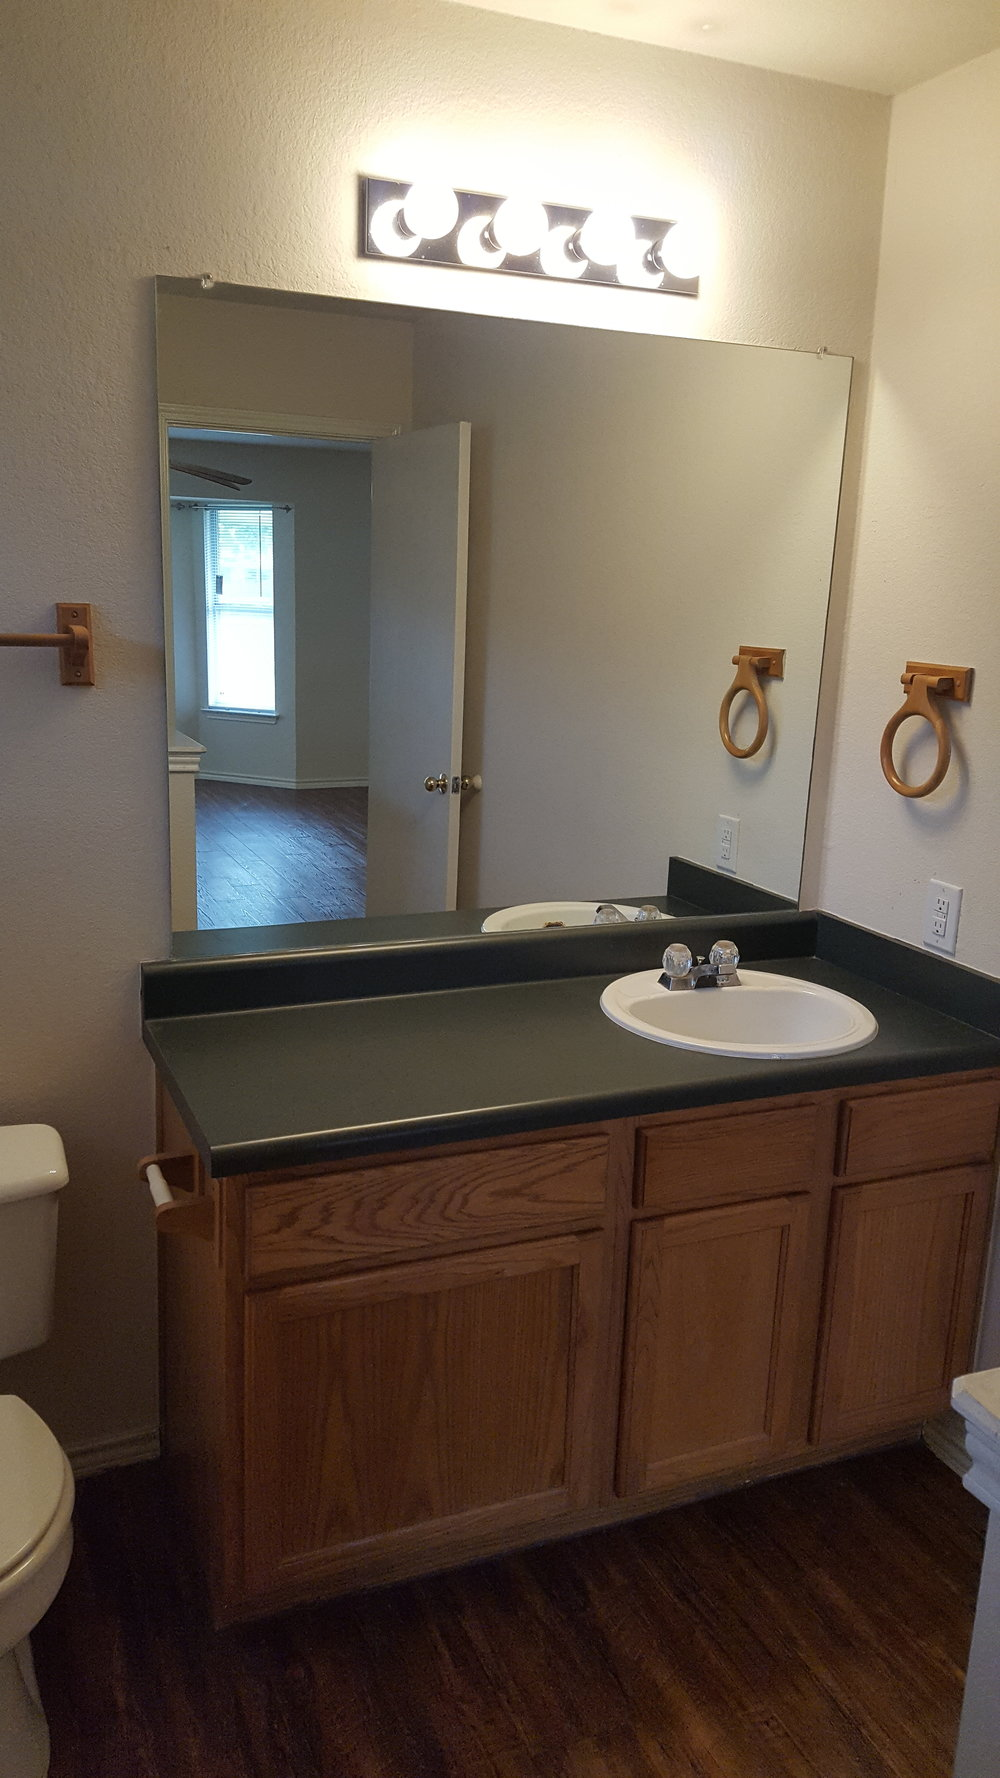 531 Britini Loop Bathroom.jpg